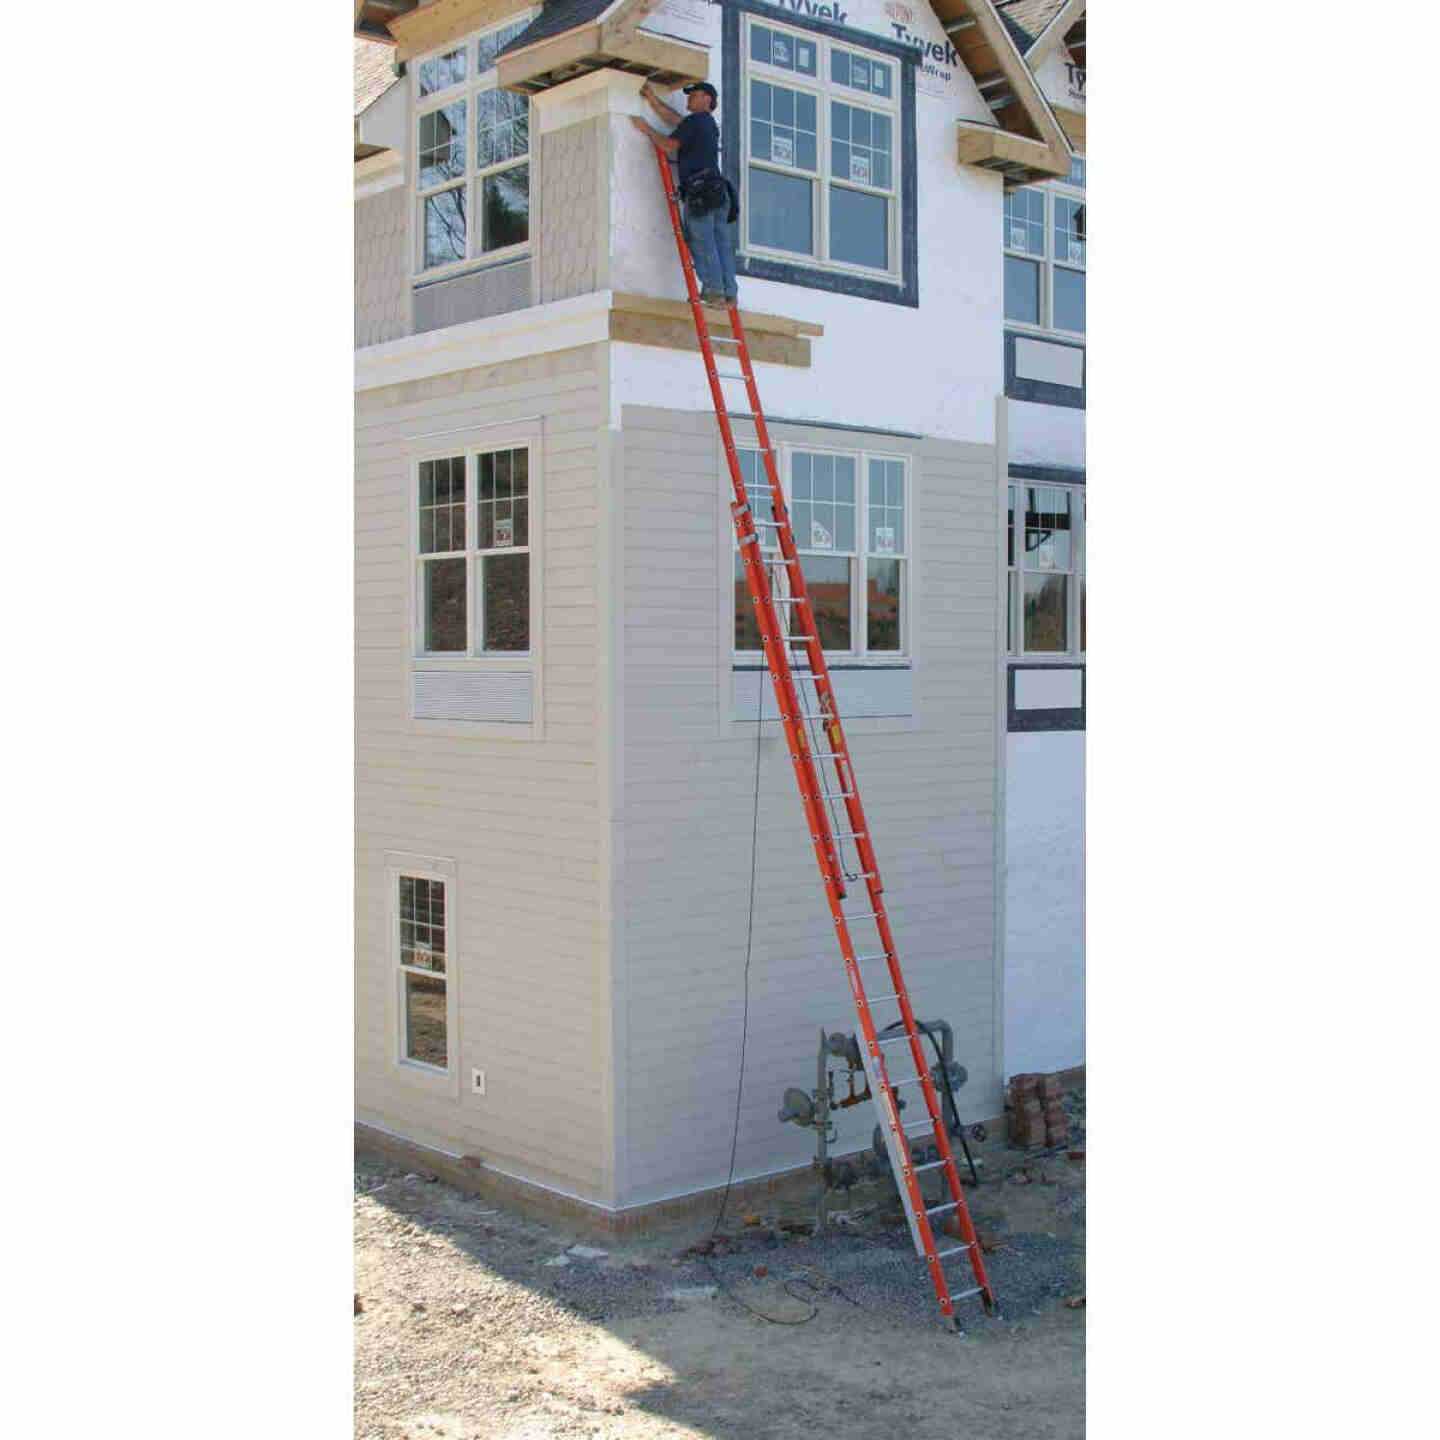 Werner 40 Ft. Fiberglass Extension Ladder with 300 Lb. Load Capacity Type IA Duty Rating Image 2